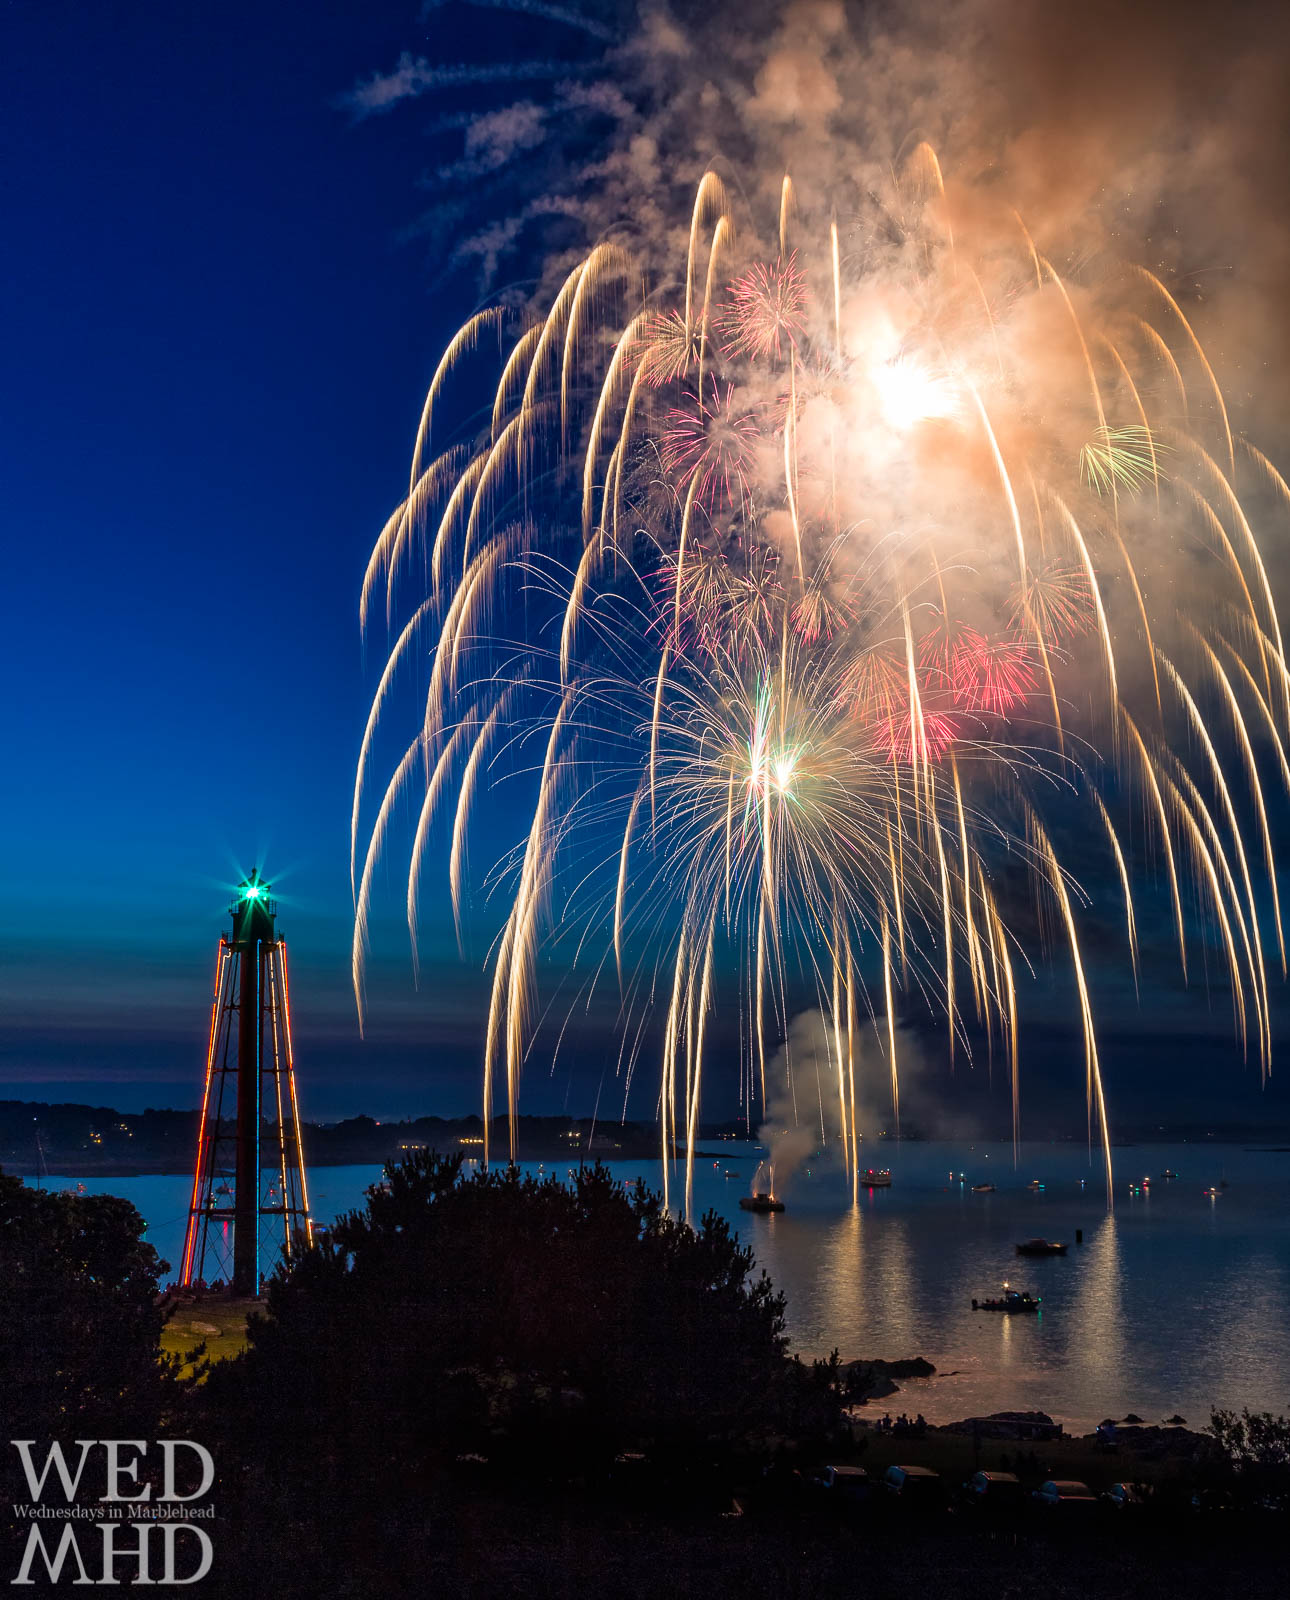 Volleys of fireworks make up the grand finale of the Marblehead Fireworks display